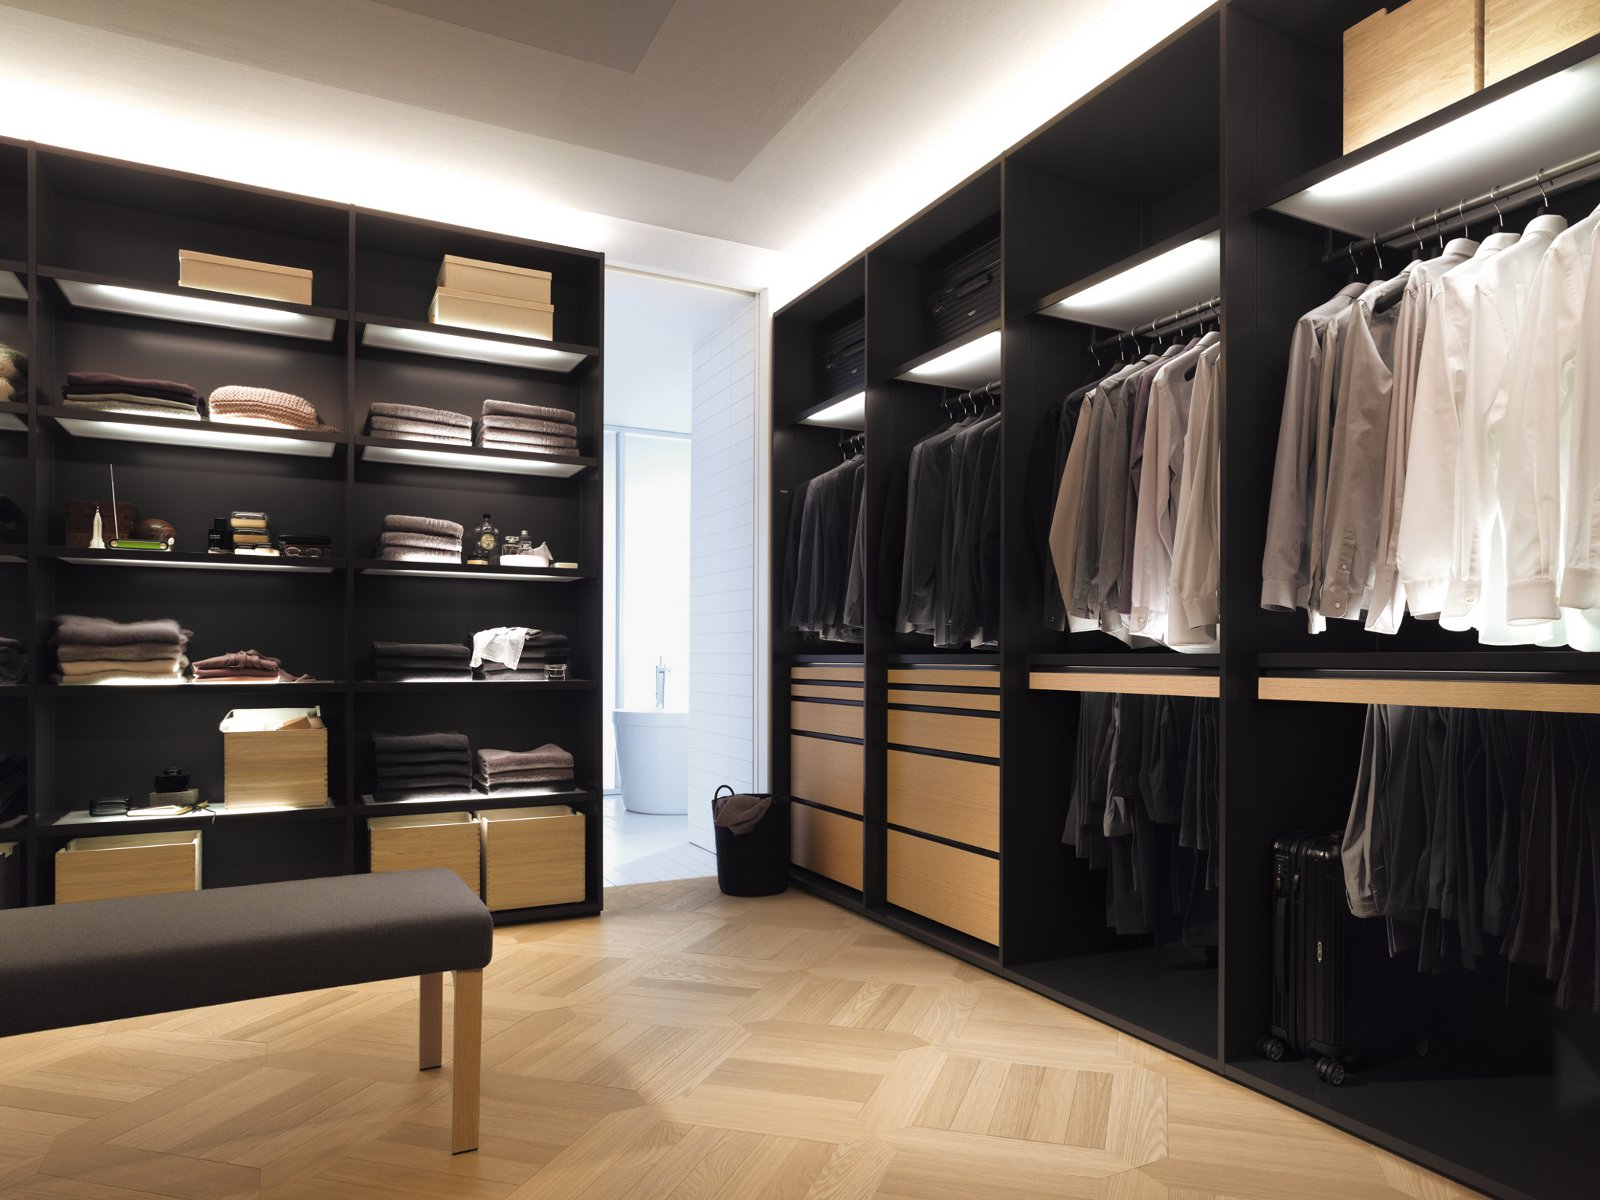 furniture-interior-awesome-black-wardrobe-with-nice-white-wall-also-elegant-wooden-floor-impressive-walk-in-closets-innovative-wardrobe-elegant-wardrobe-closet-design-and-idea-for-modern-home-design-a.jpg